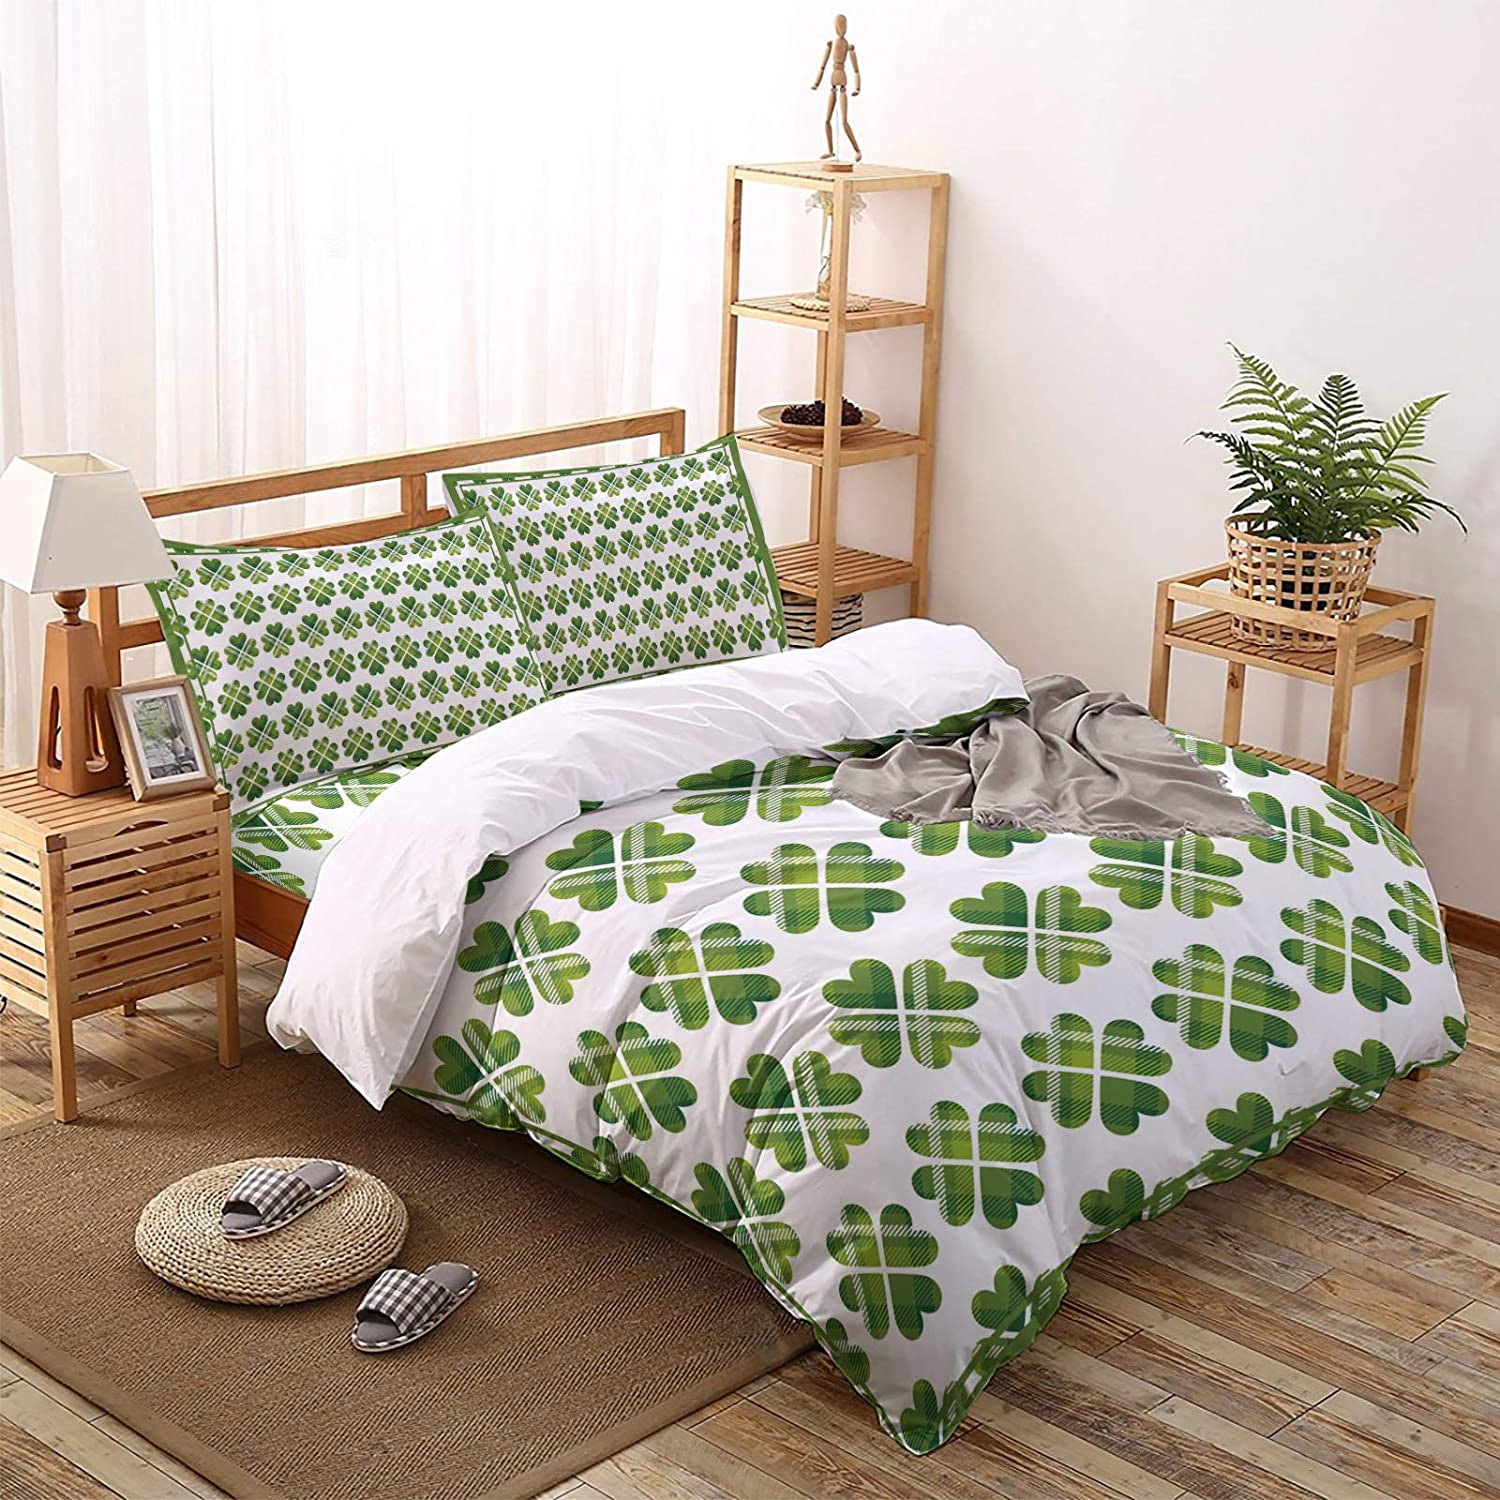 4 Pieces Duvet Cover Factory outlet Bedding 1 Set- + It is very popular Sheet Flat